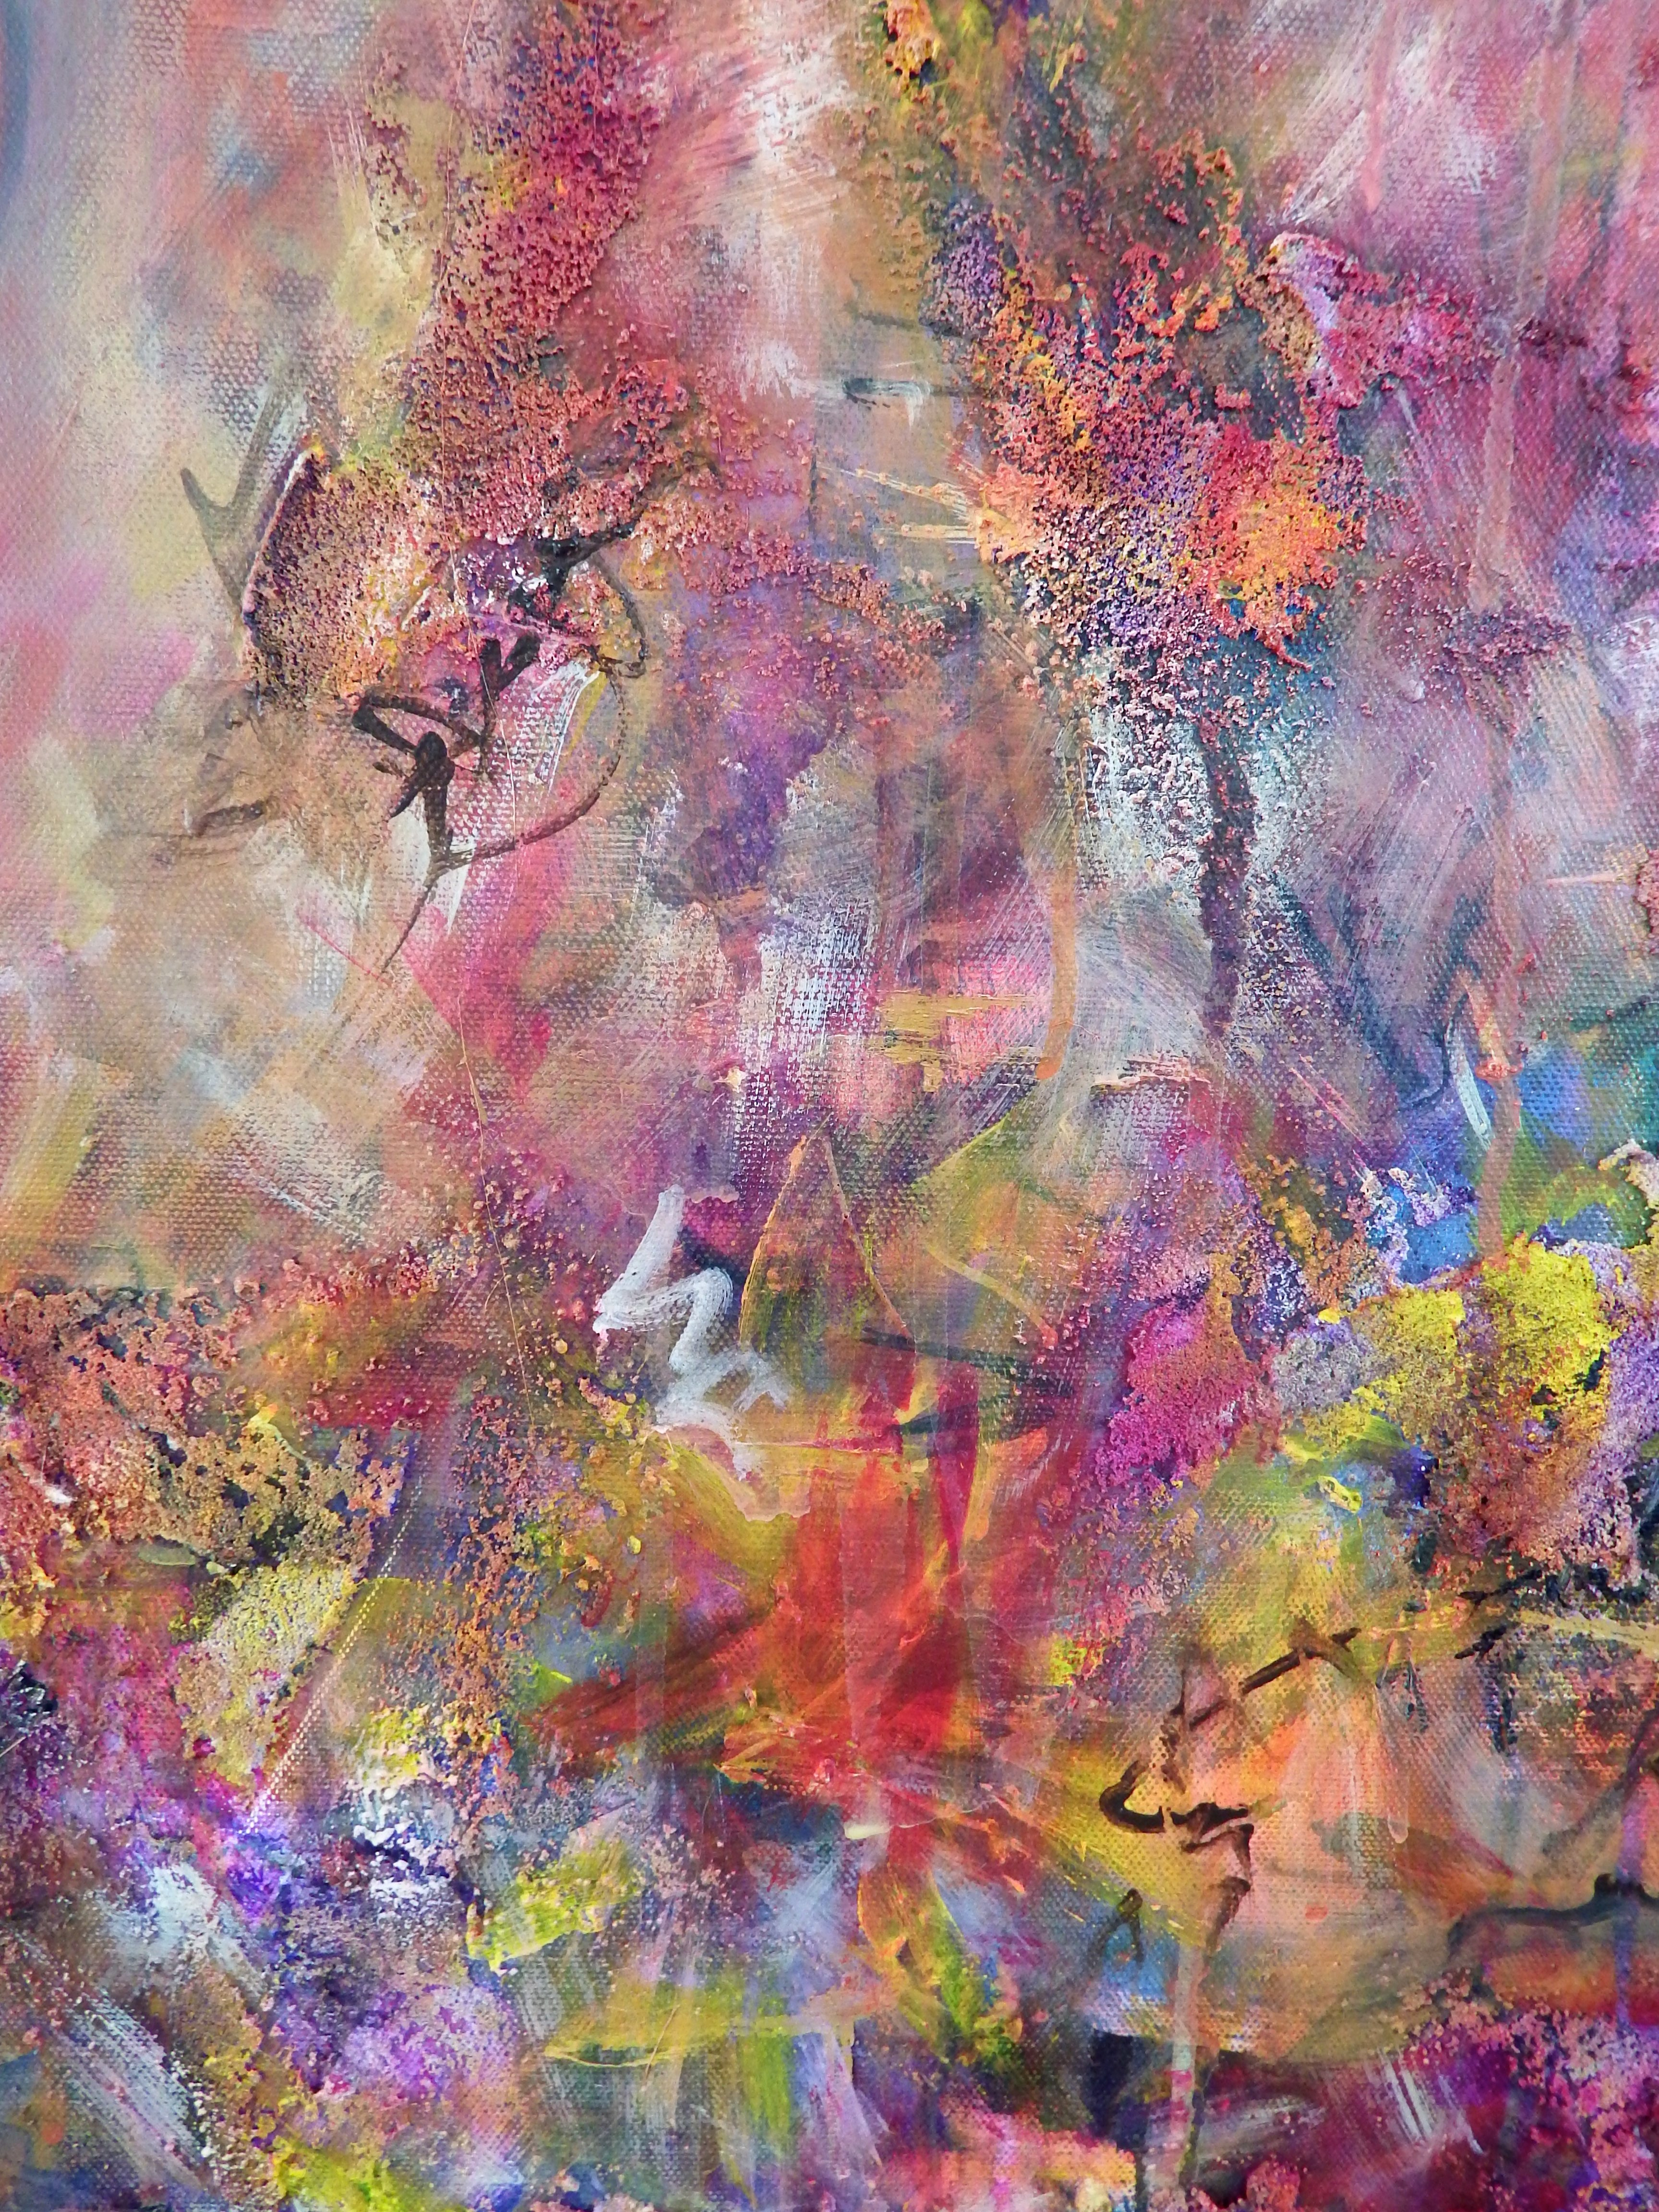 Between the Lilies, Mixed Media on Canvas, by Sabrina Brett 4